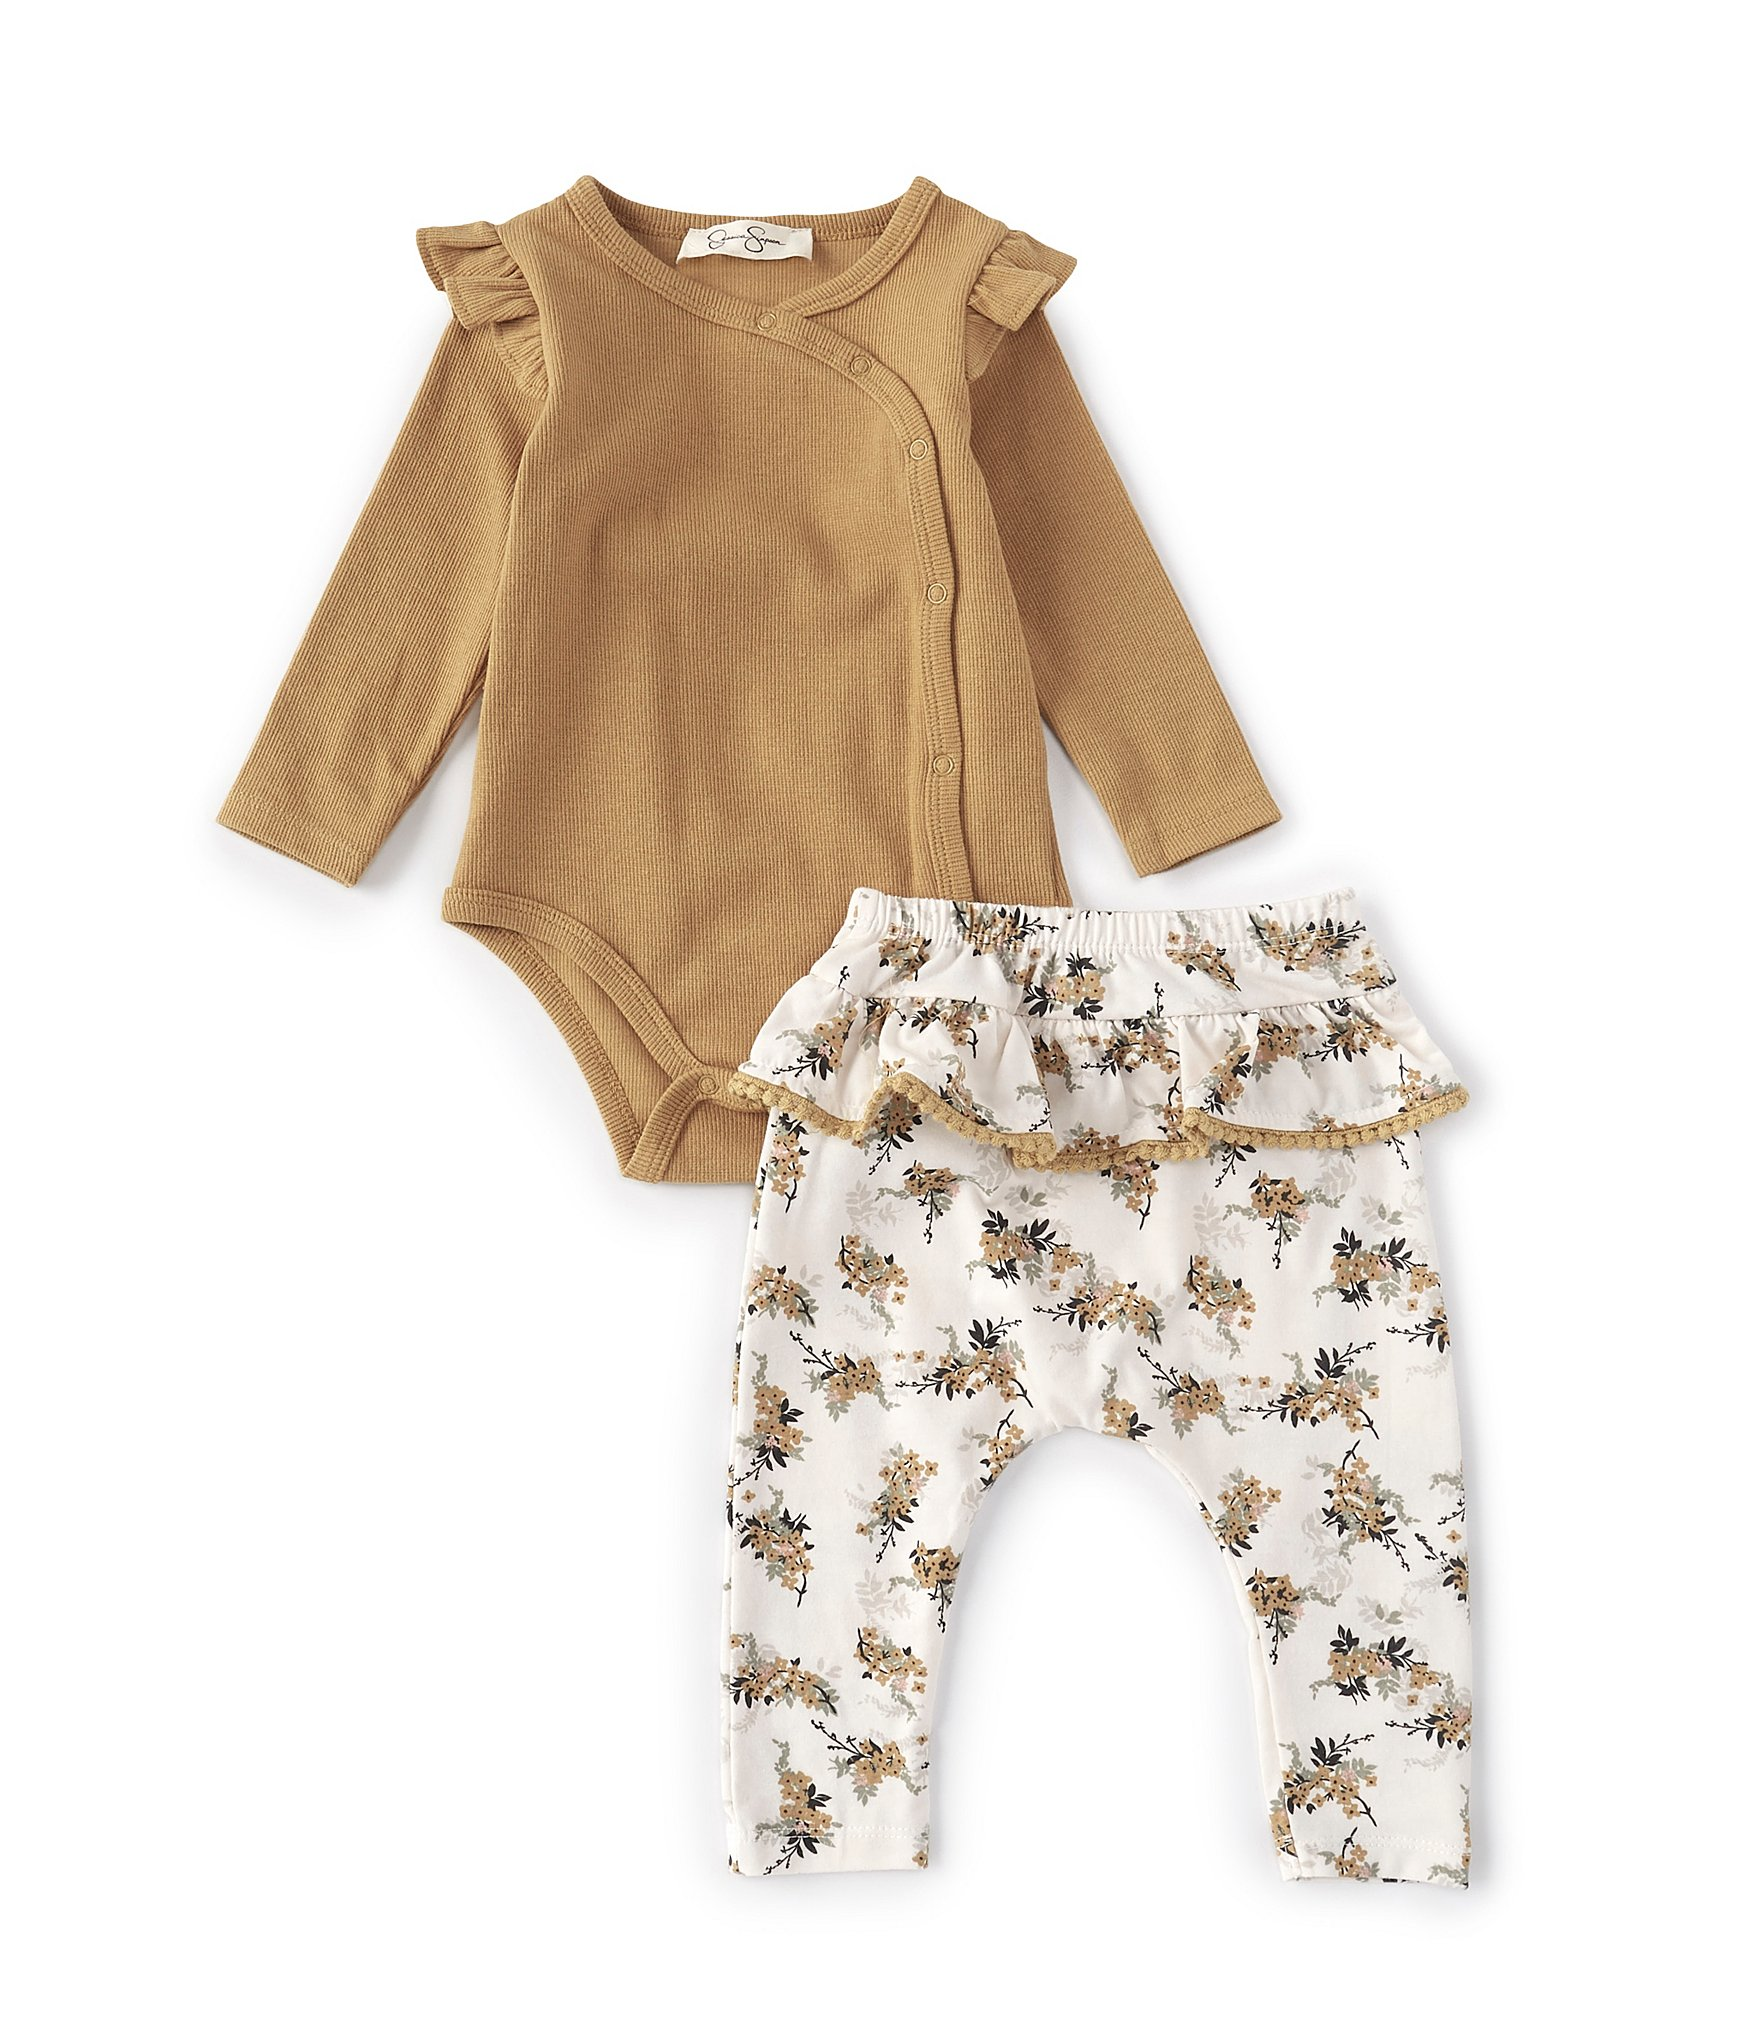 Jessica Simpson Baby Girl Clothes Online